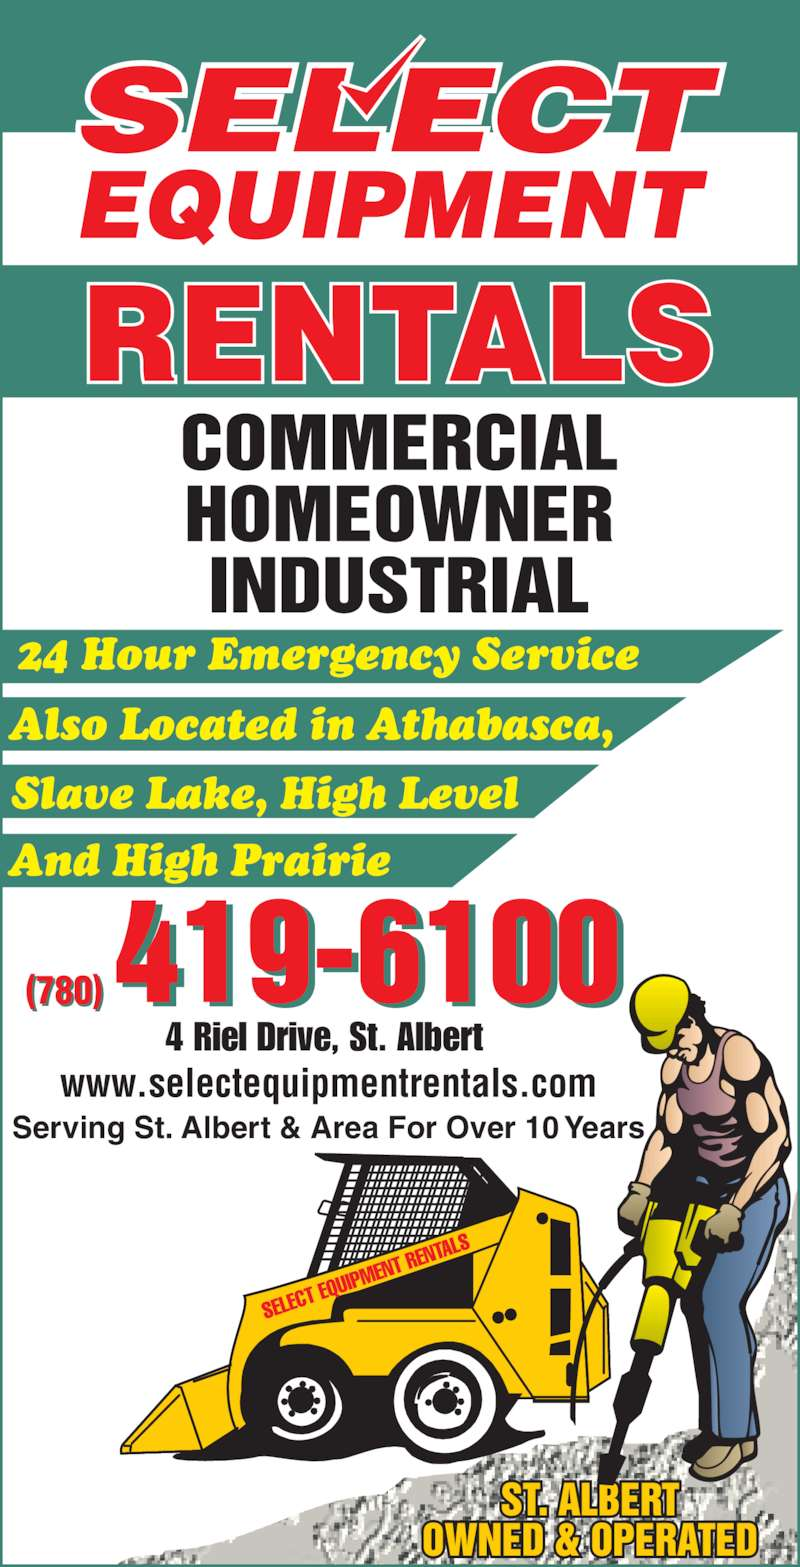 Select Equipment Rentals (780-419-6100) - Display Ad - Also Located in Athabasca, And High Prairie Slave Lake, High Level 24 Hour Emergency Service www.selectequipmentrentals.com Serving St. Albert & Area For Over 10 Years 4 Riel Drive, St. Albert (780)